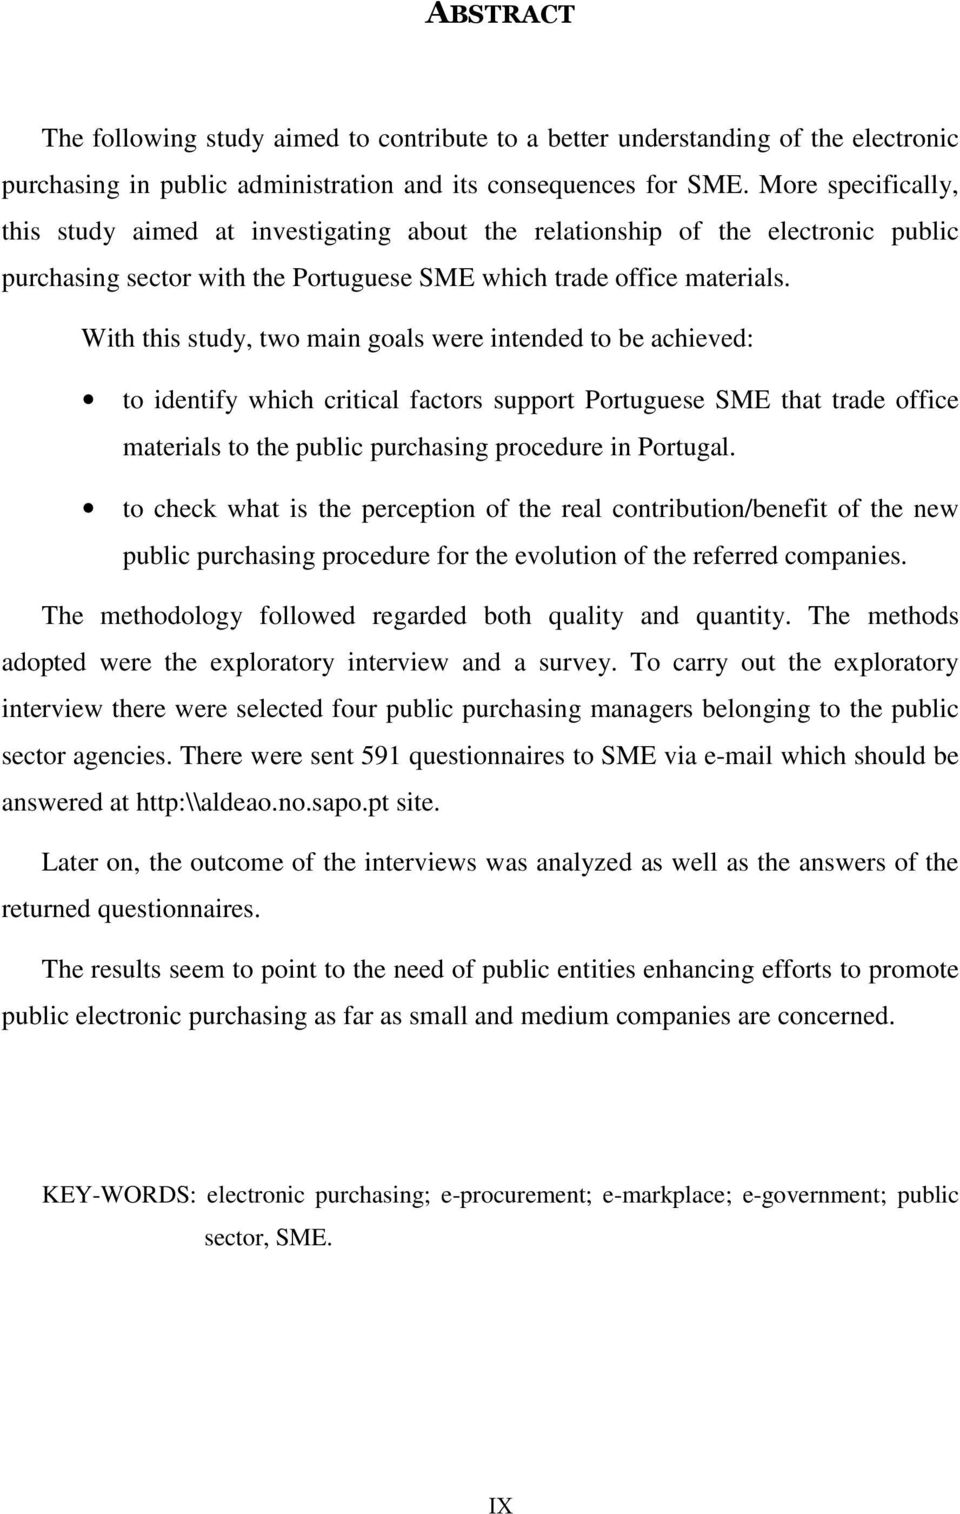 With this study, two main goals were intended to be achieved: to identify which critical factors support Portuguese SME that trade office materials to the public purchasing procedure in Portugal.